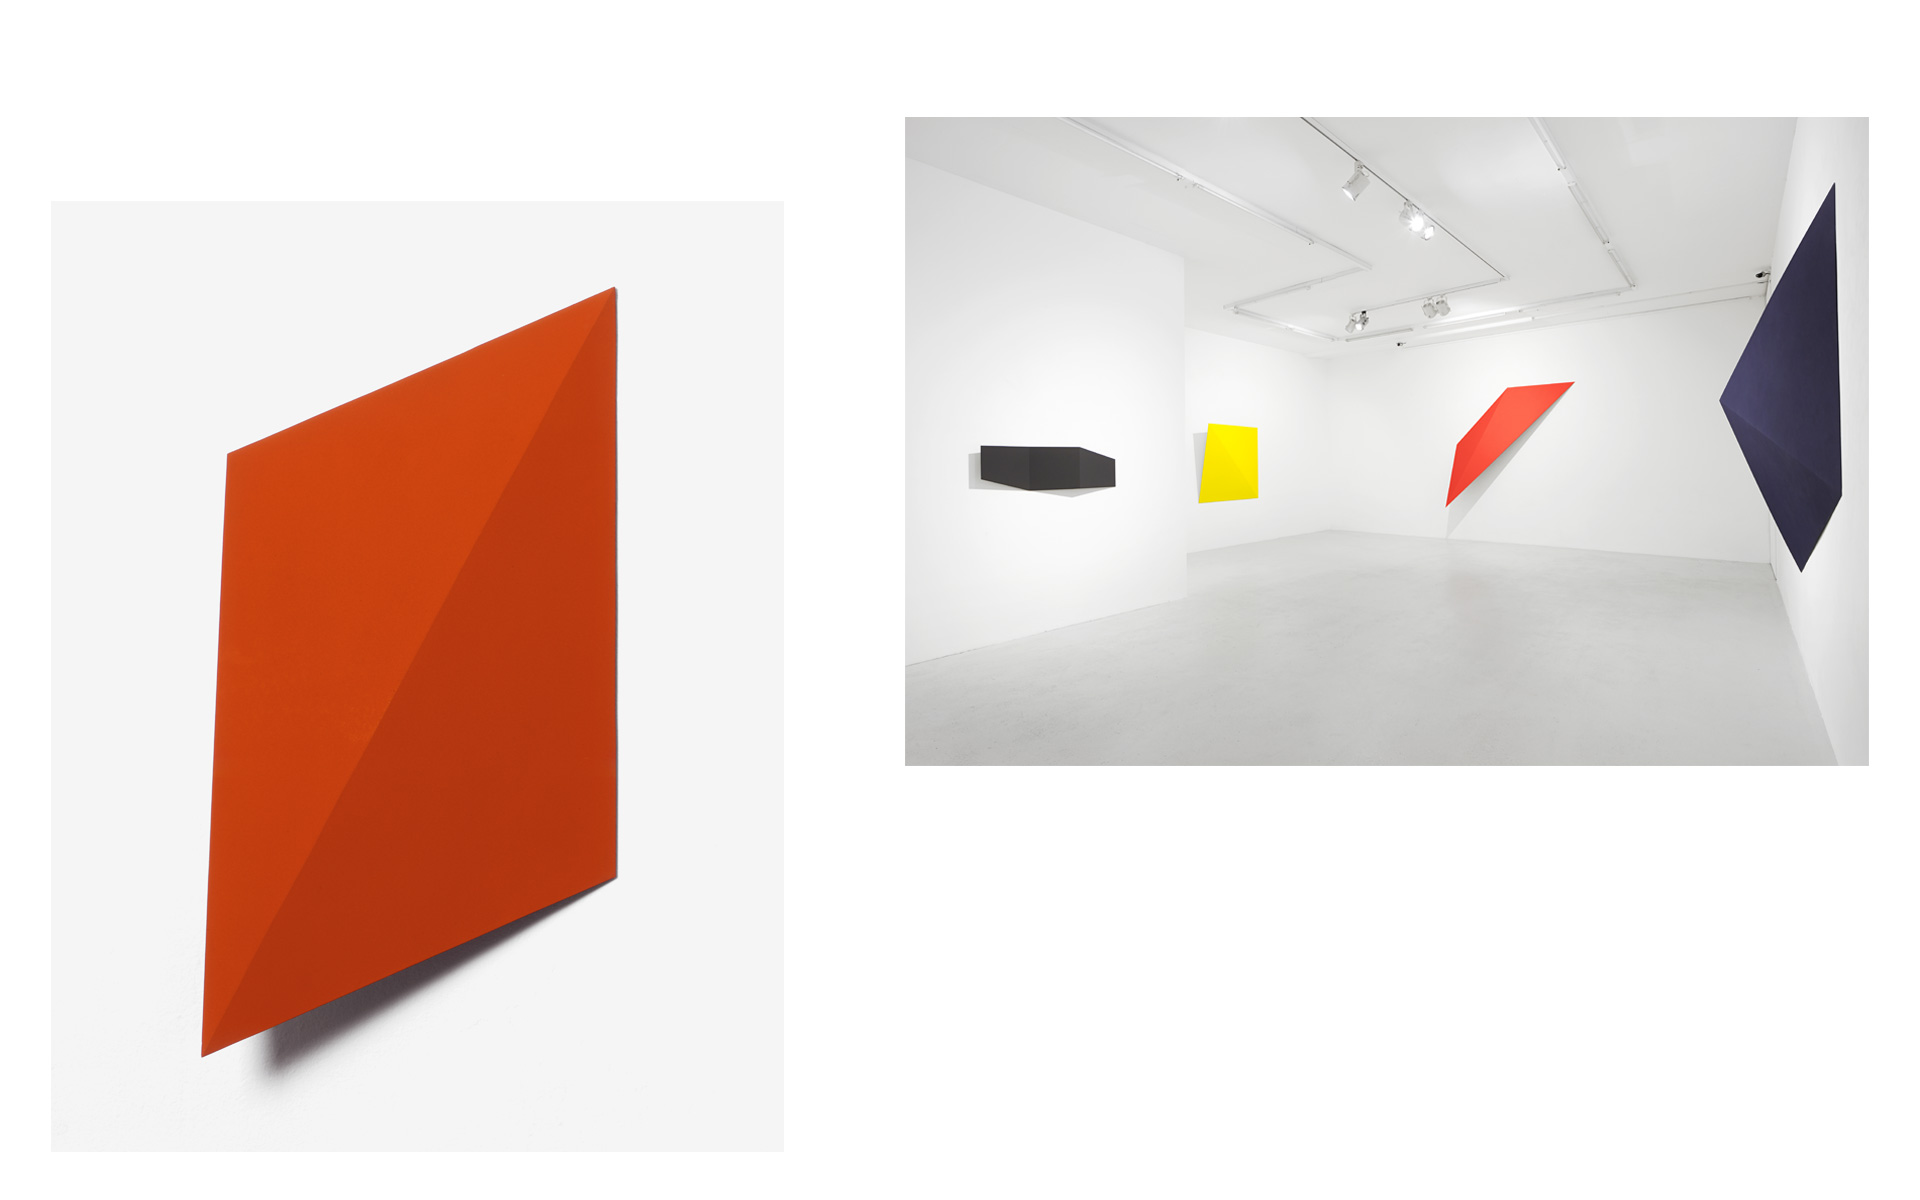 left: O. T., 1991 Acrylic on steel 68 × 33.5 × 8 cm / right: Installation view Gallery Lange + Pult, Zürich, 2015 - Photos: Sully Balmassière